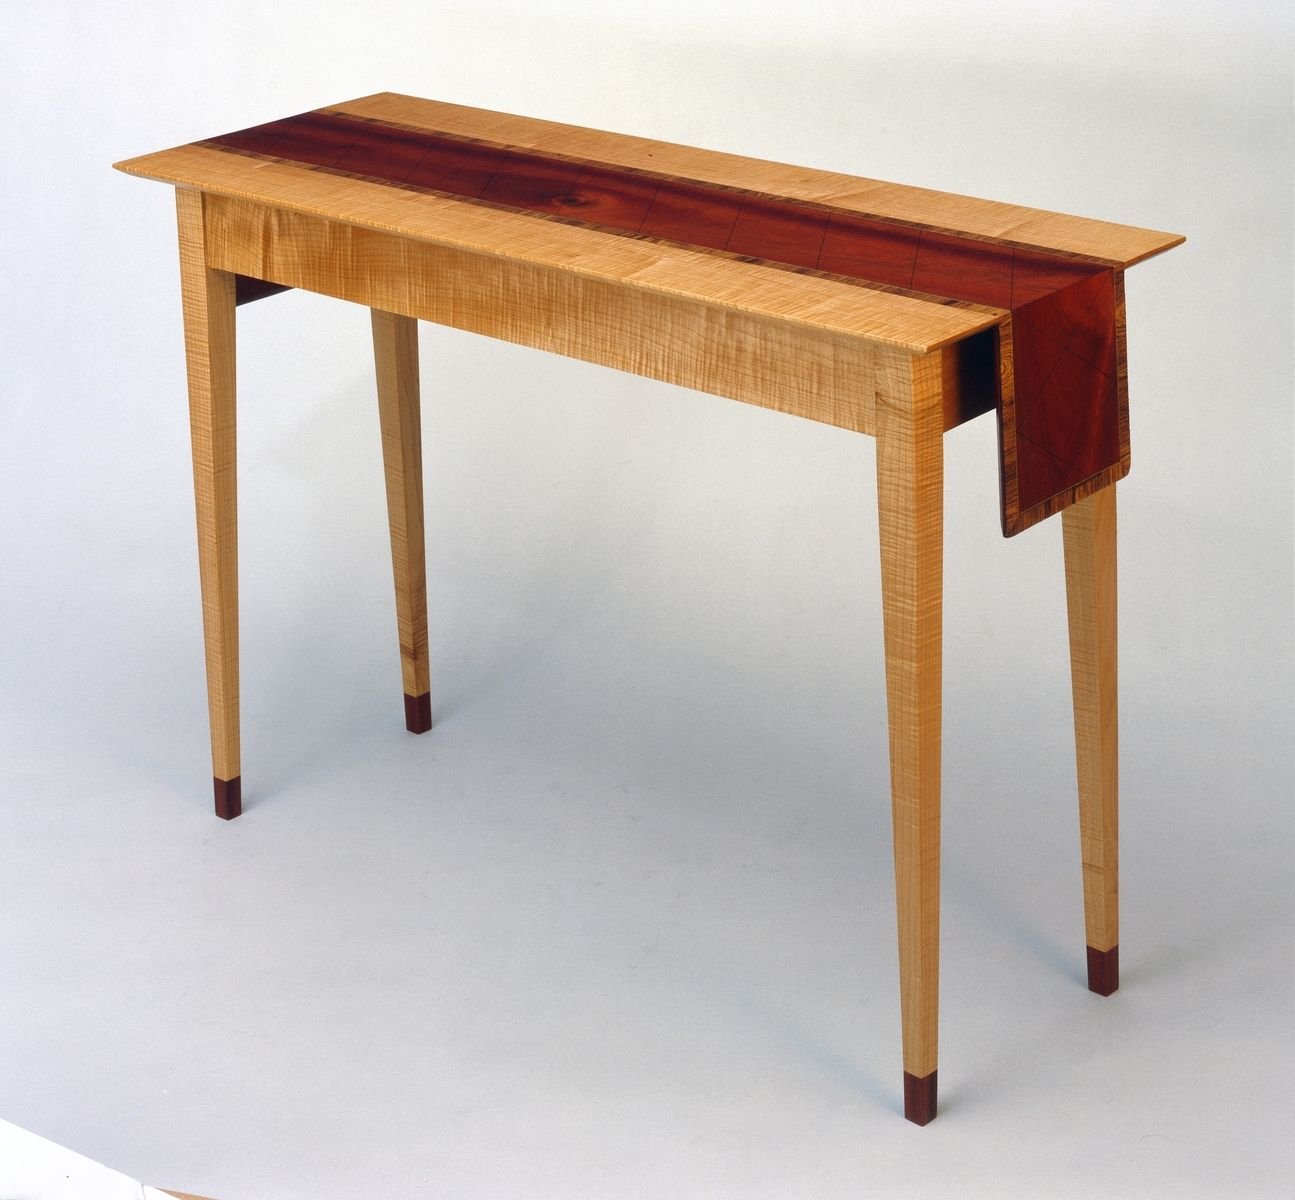 Hand Crafted Hallway Table With Wooden Table Cloth Runner by Wood